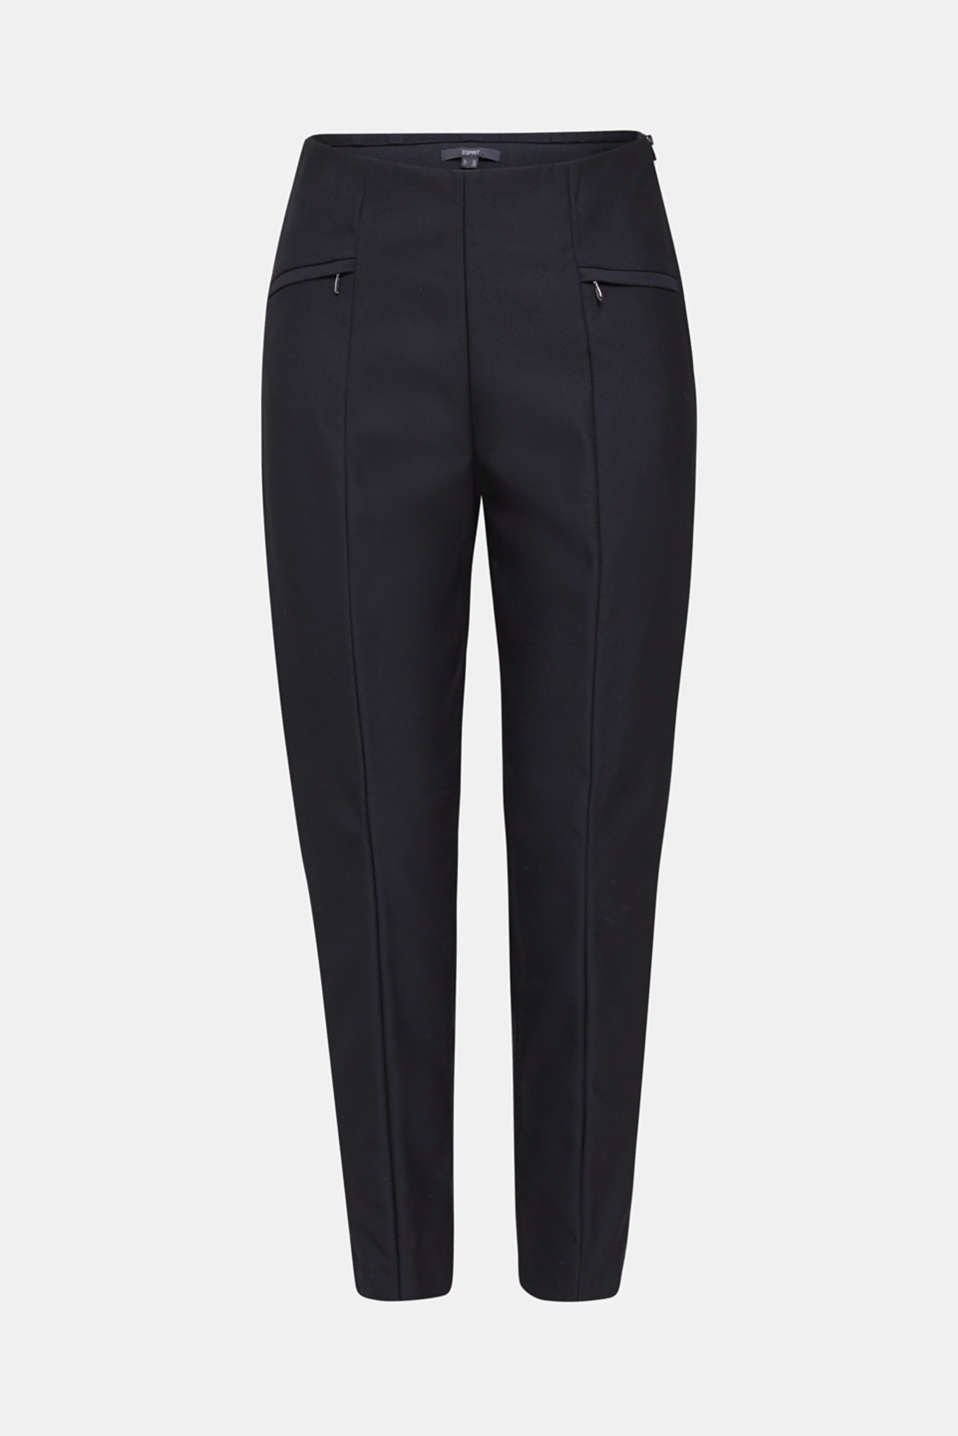 Ankle-length cigarette trousers, BLACK, detail image number 6